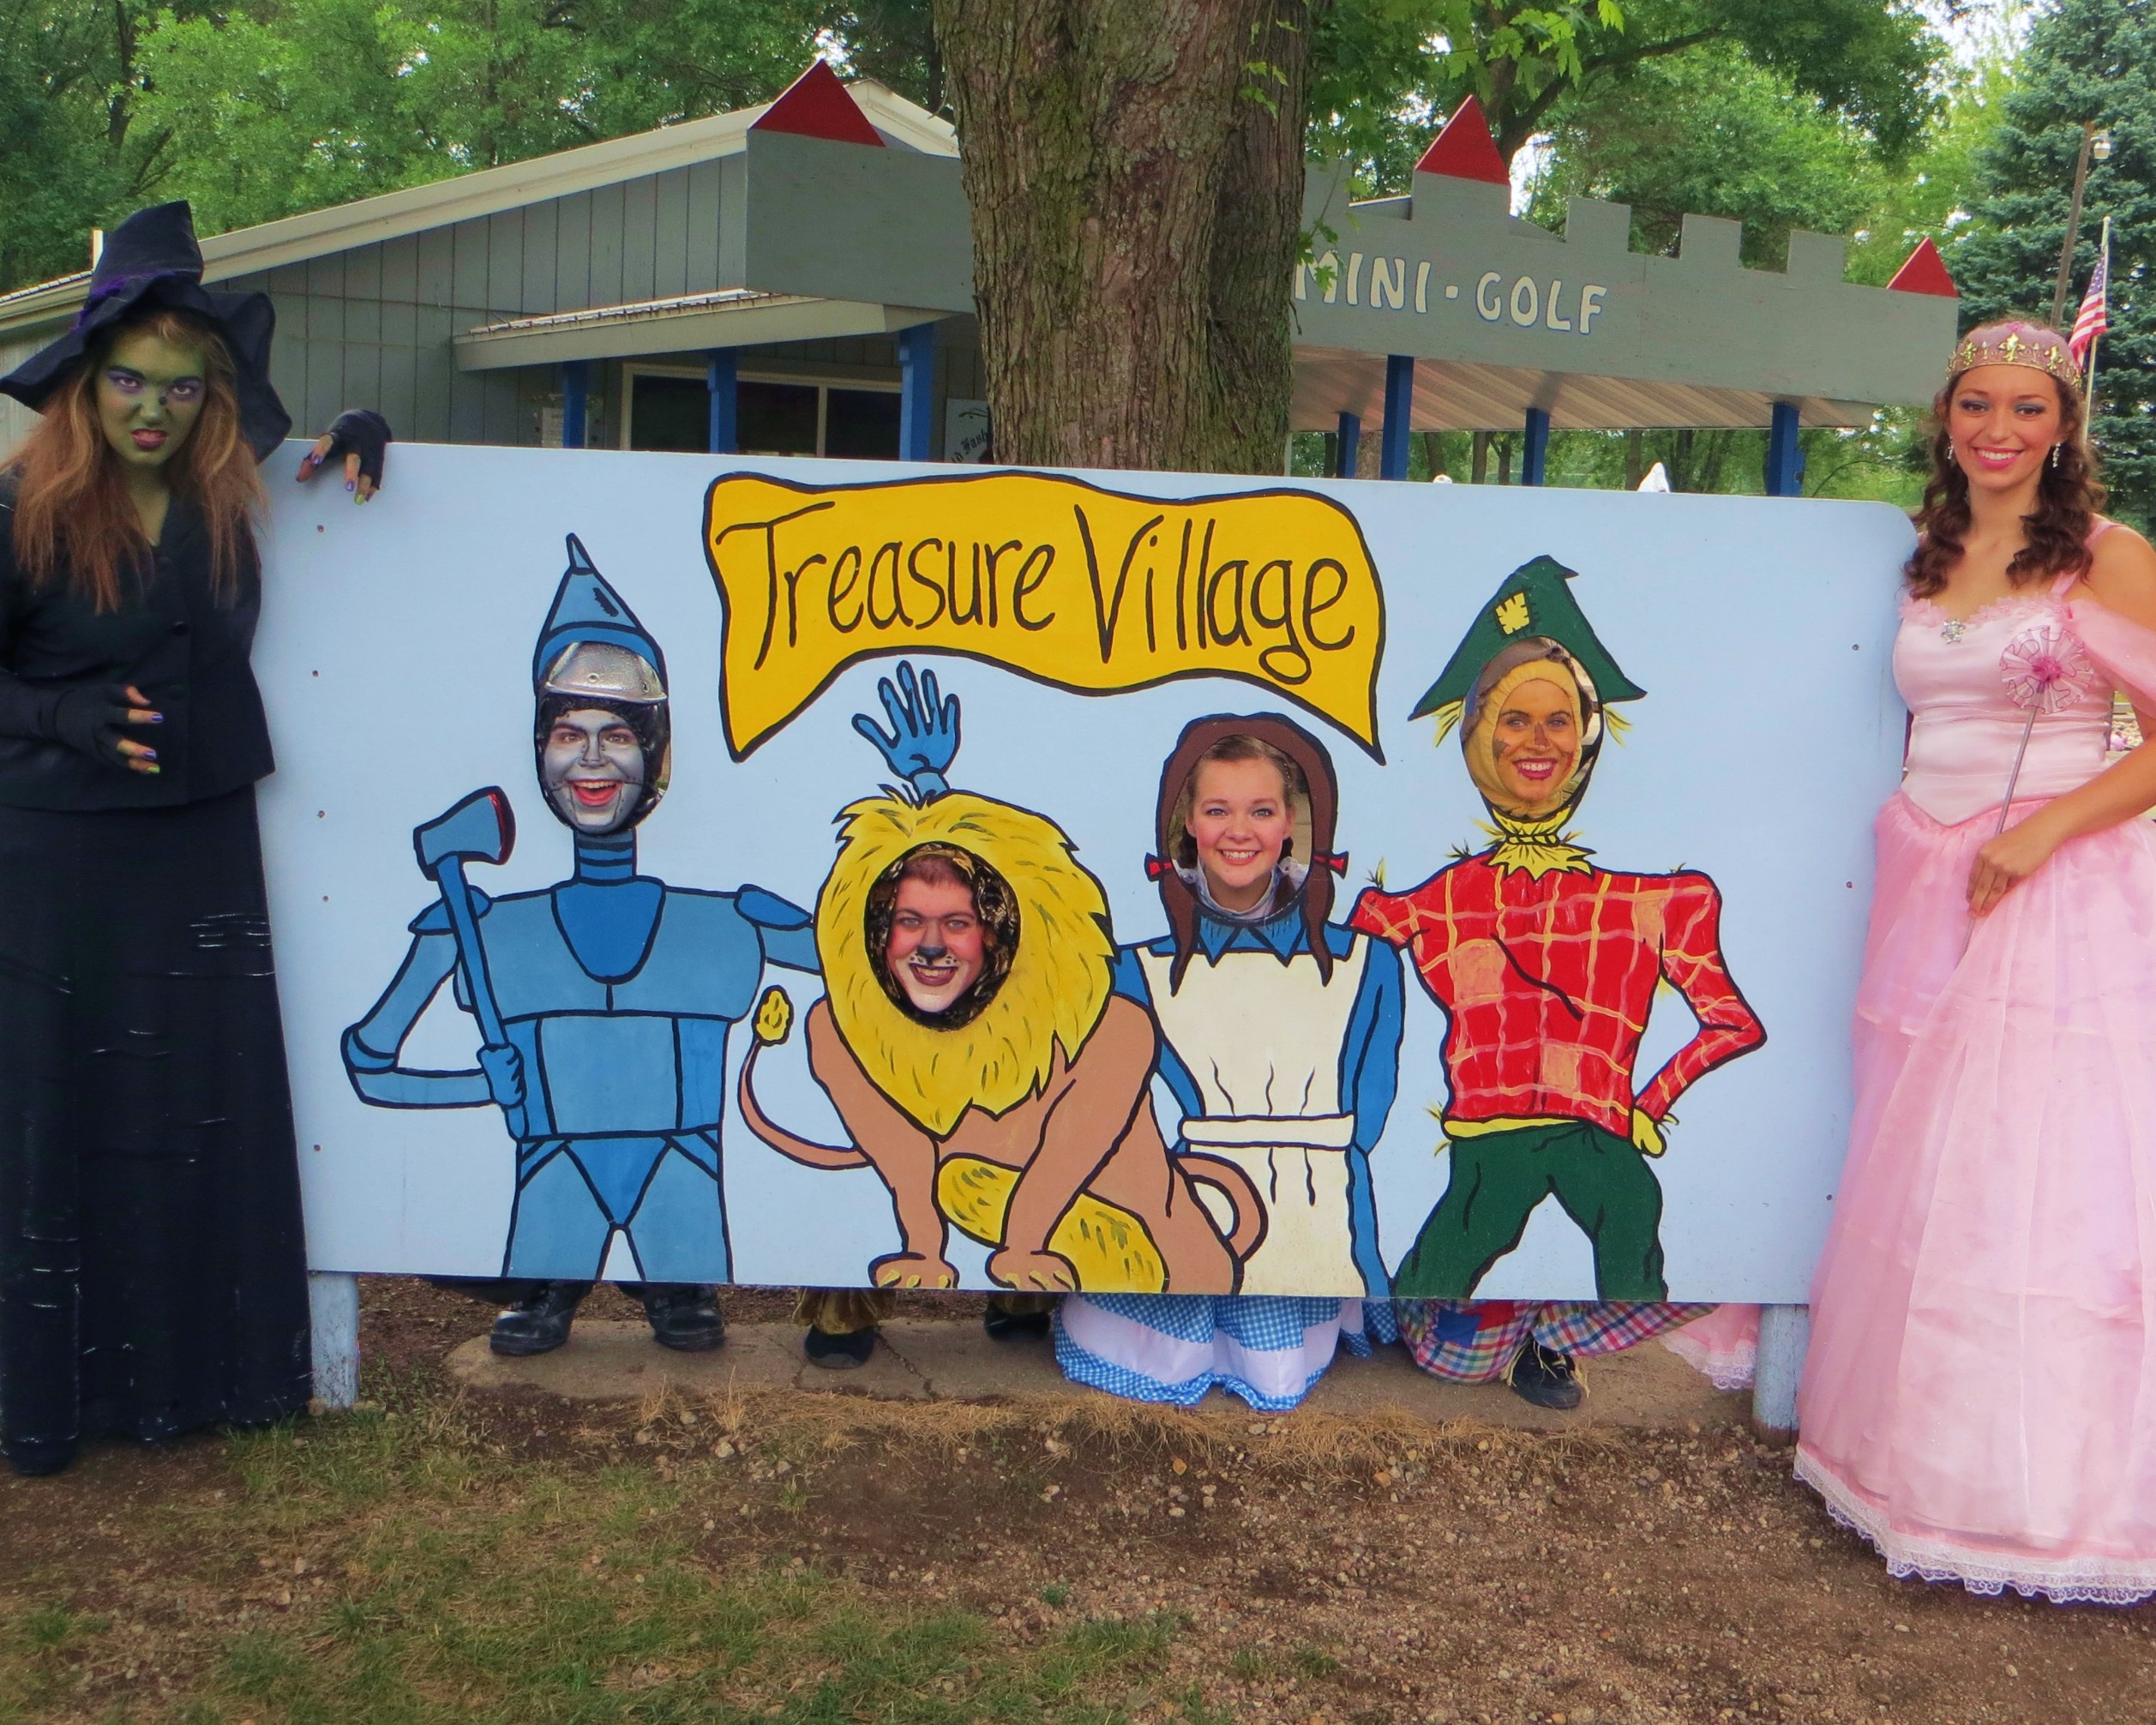 Wizard of Oz cast posing at the Mini-Golf with their likeness!